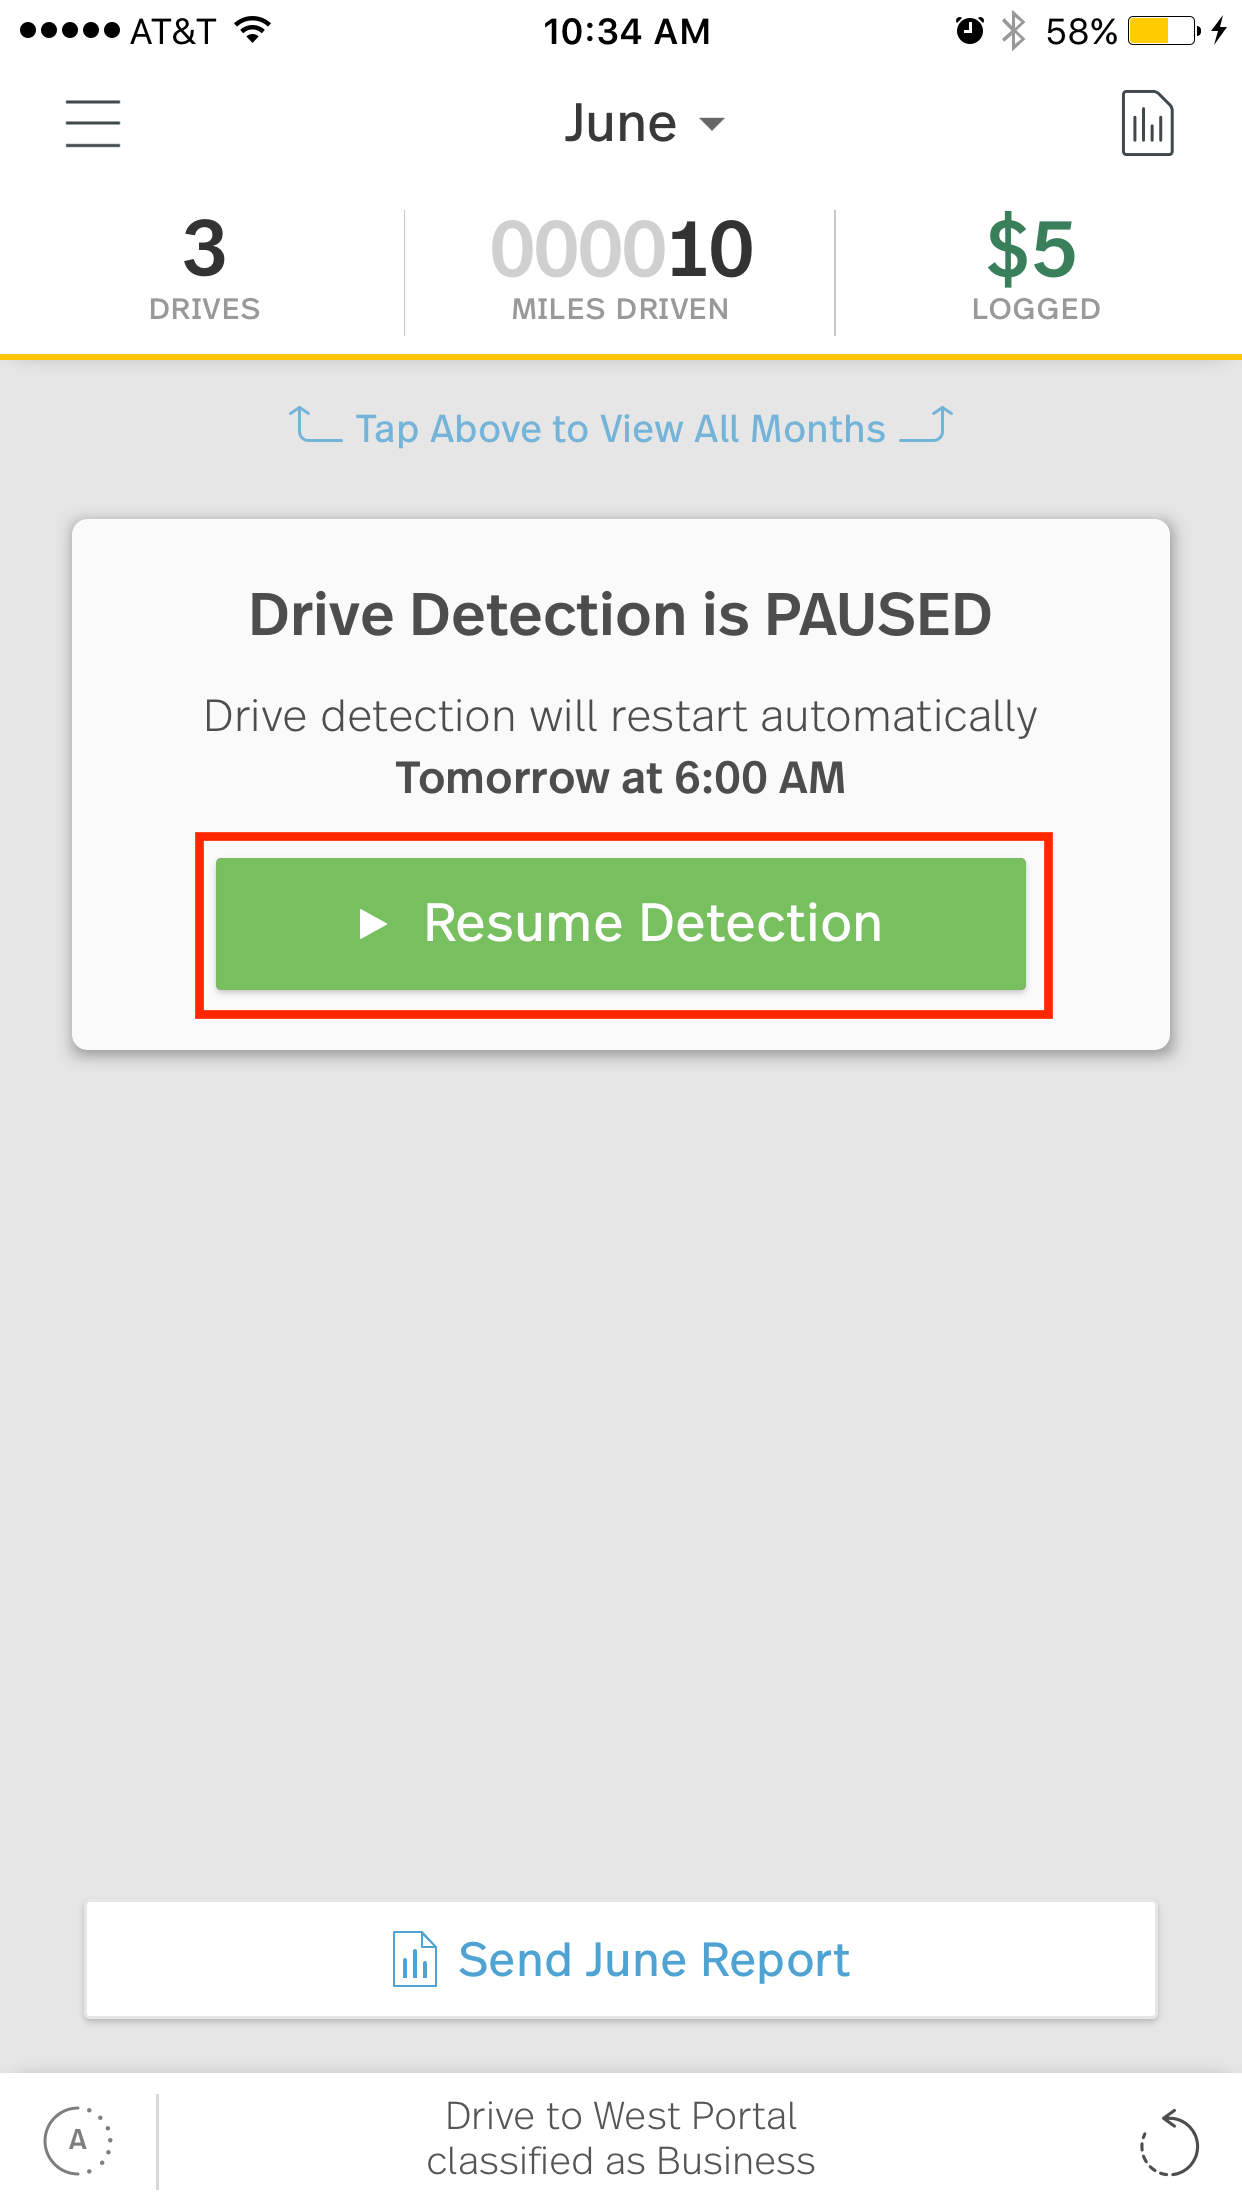 This image shows the MileIQ mobile app with drive detection paused. The resume detection button is highlighted.